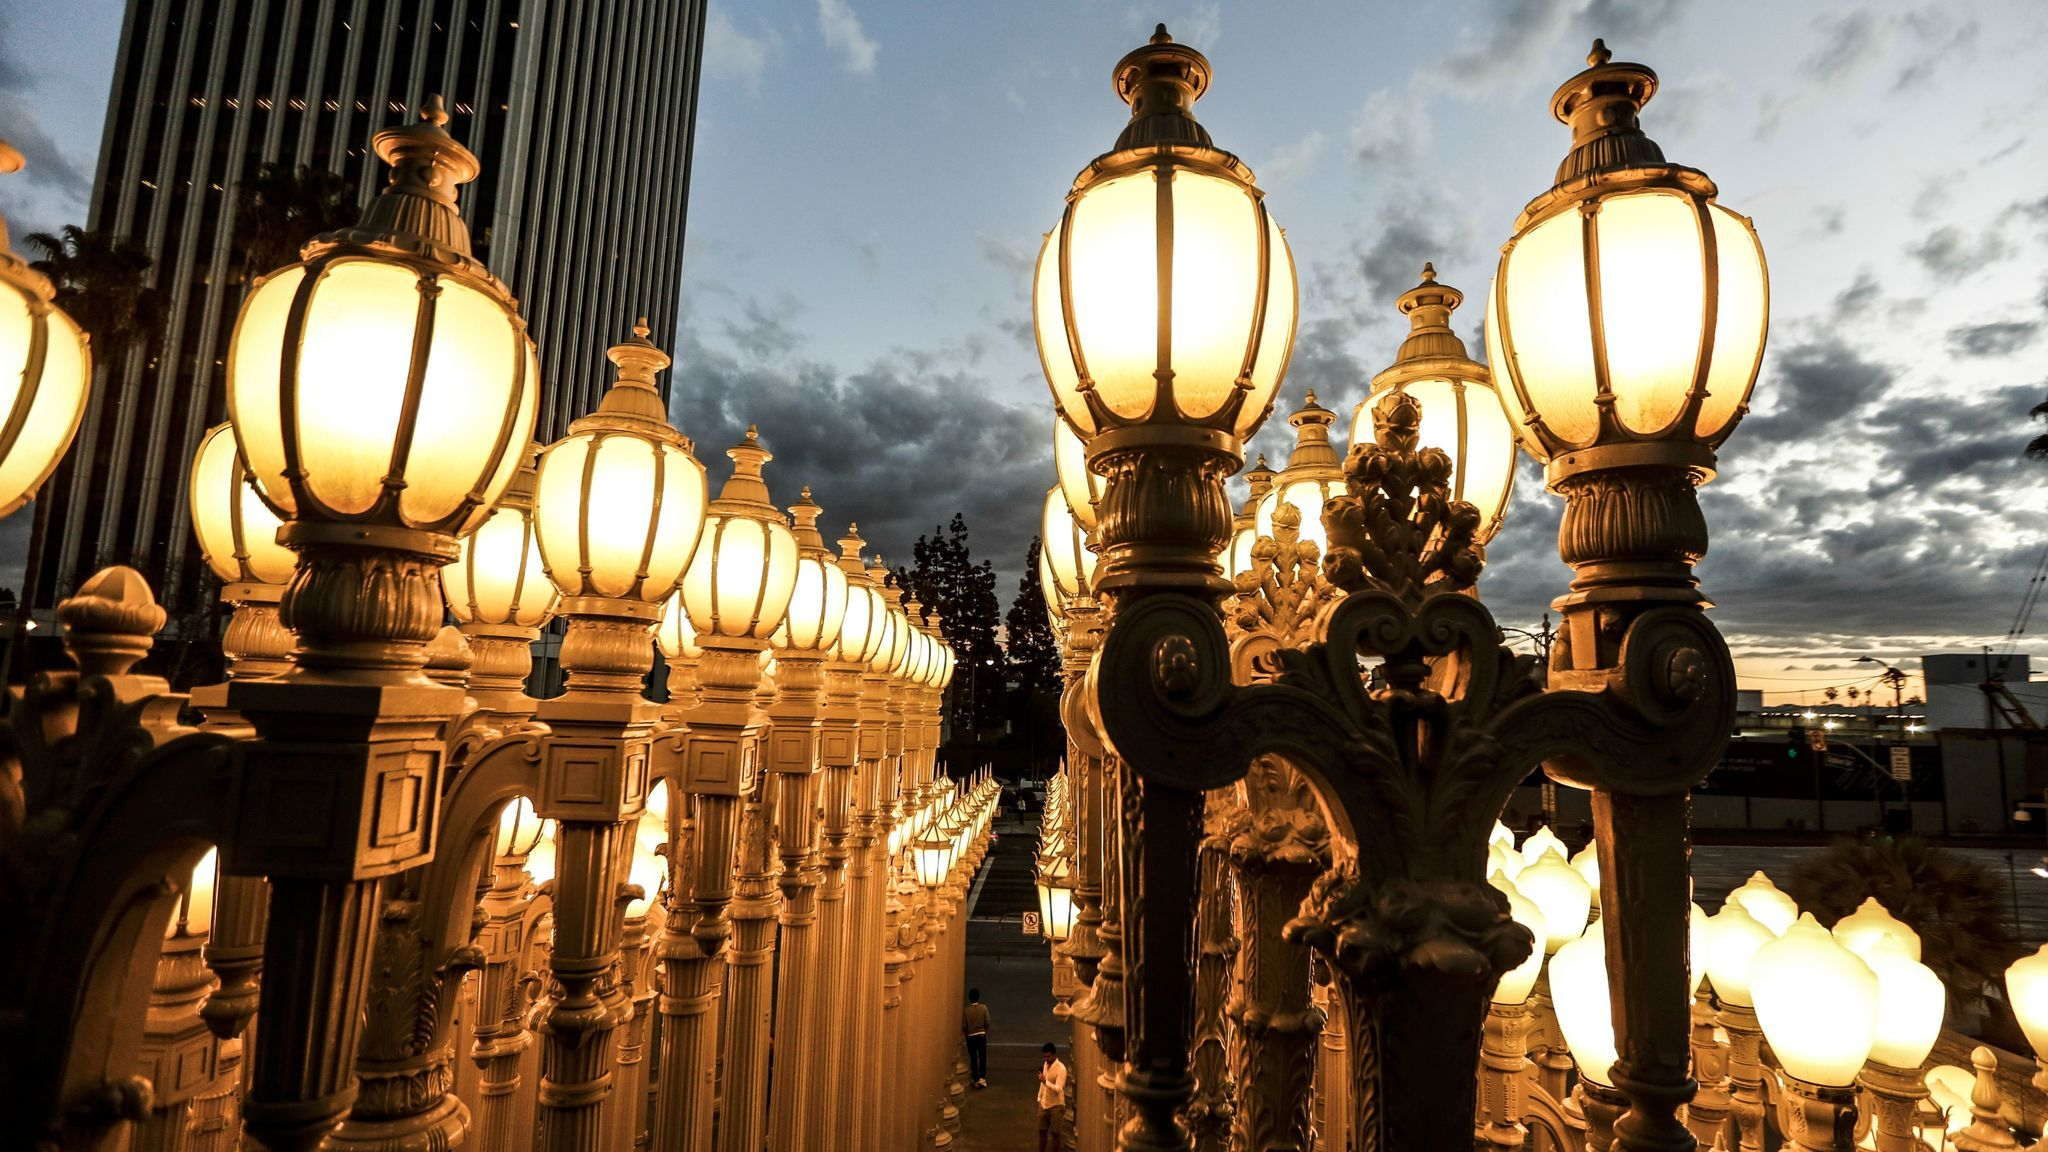 Urban Light Everything You Didnt Know About Las Beloved How To Run Multiple Lights On One Switch The Broadway Roses Is Artists Favorite Work Standing 26 Feet Tall And Tallest Of Maria Alejandra Cardona Los Angeles Times